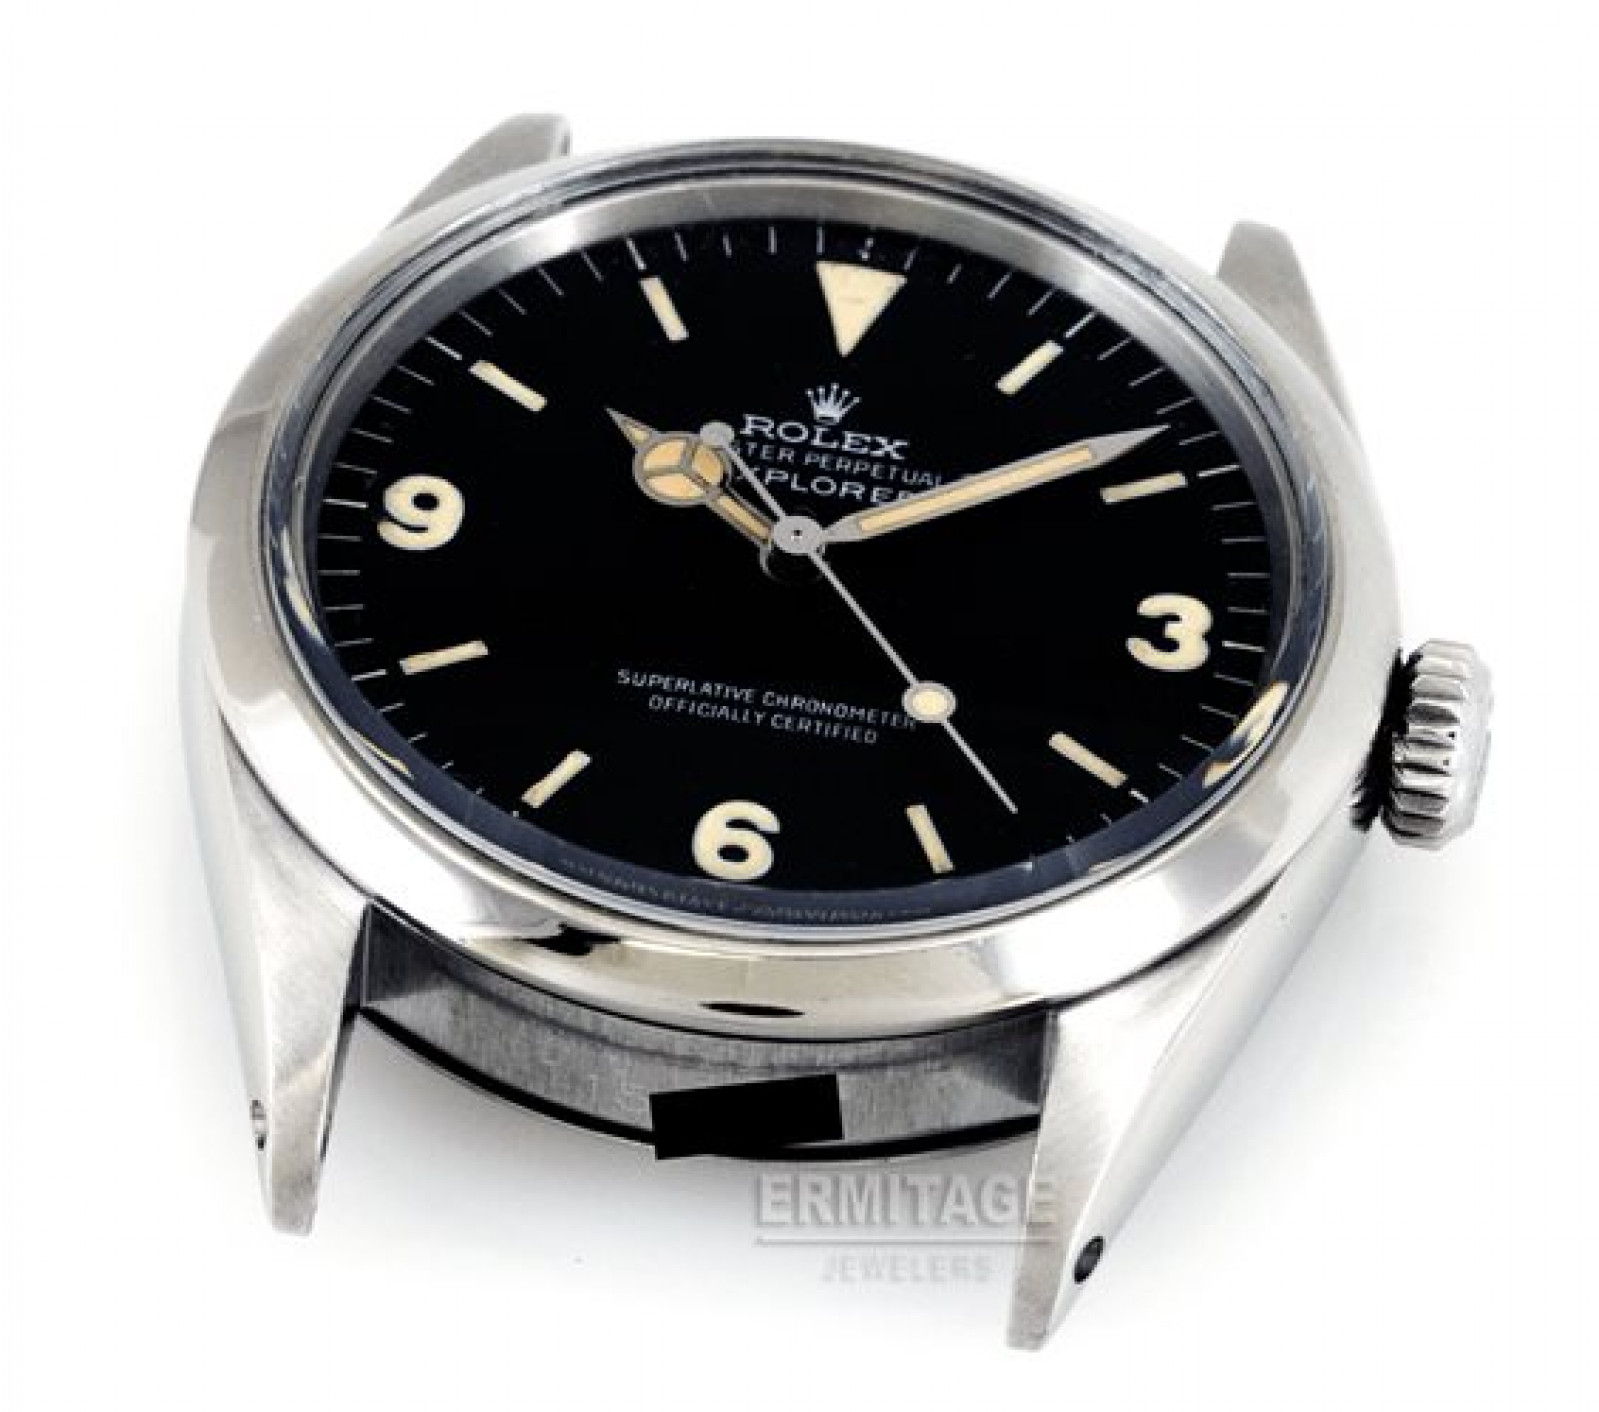 Vintage Rolex Explorer 1016 Steel with Black Dial